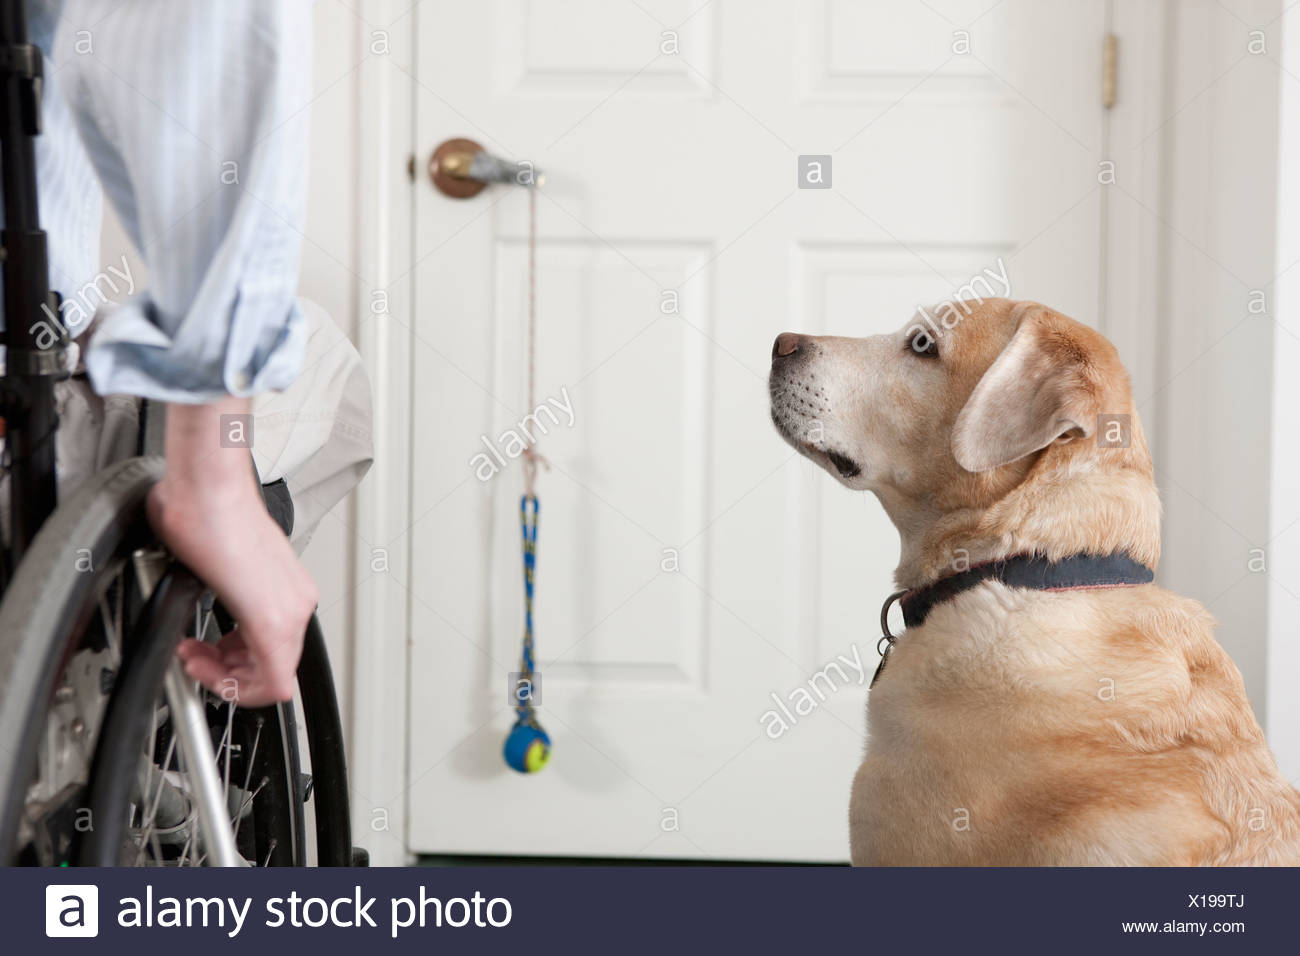 Service dog with a man in a wheelchair - Stock Image